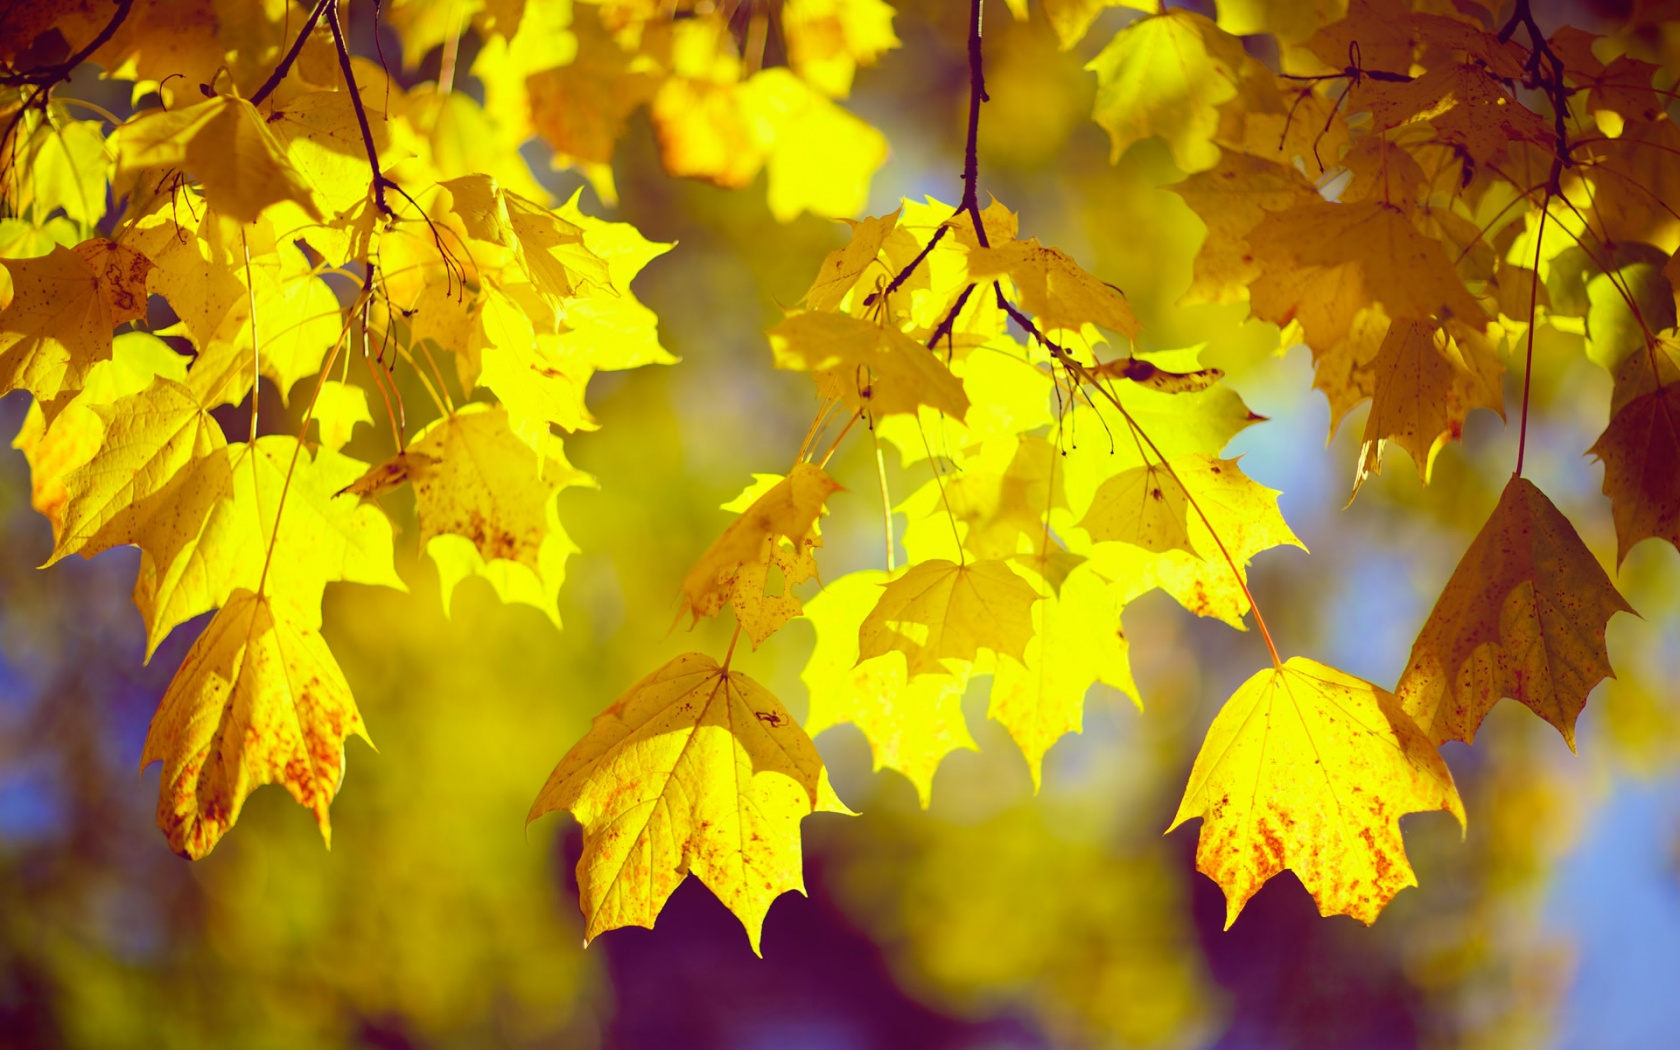 desktop wallpaper fall leaves   wwwwallpapers in hdcom 1680x1050